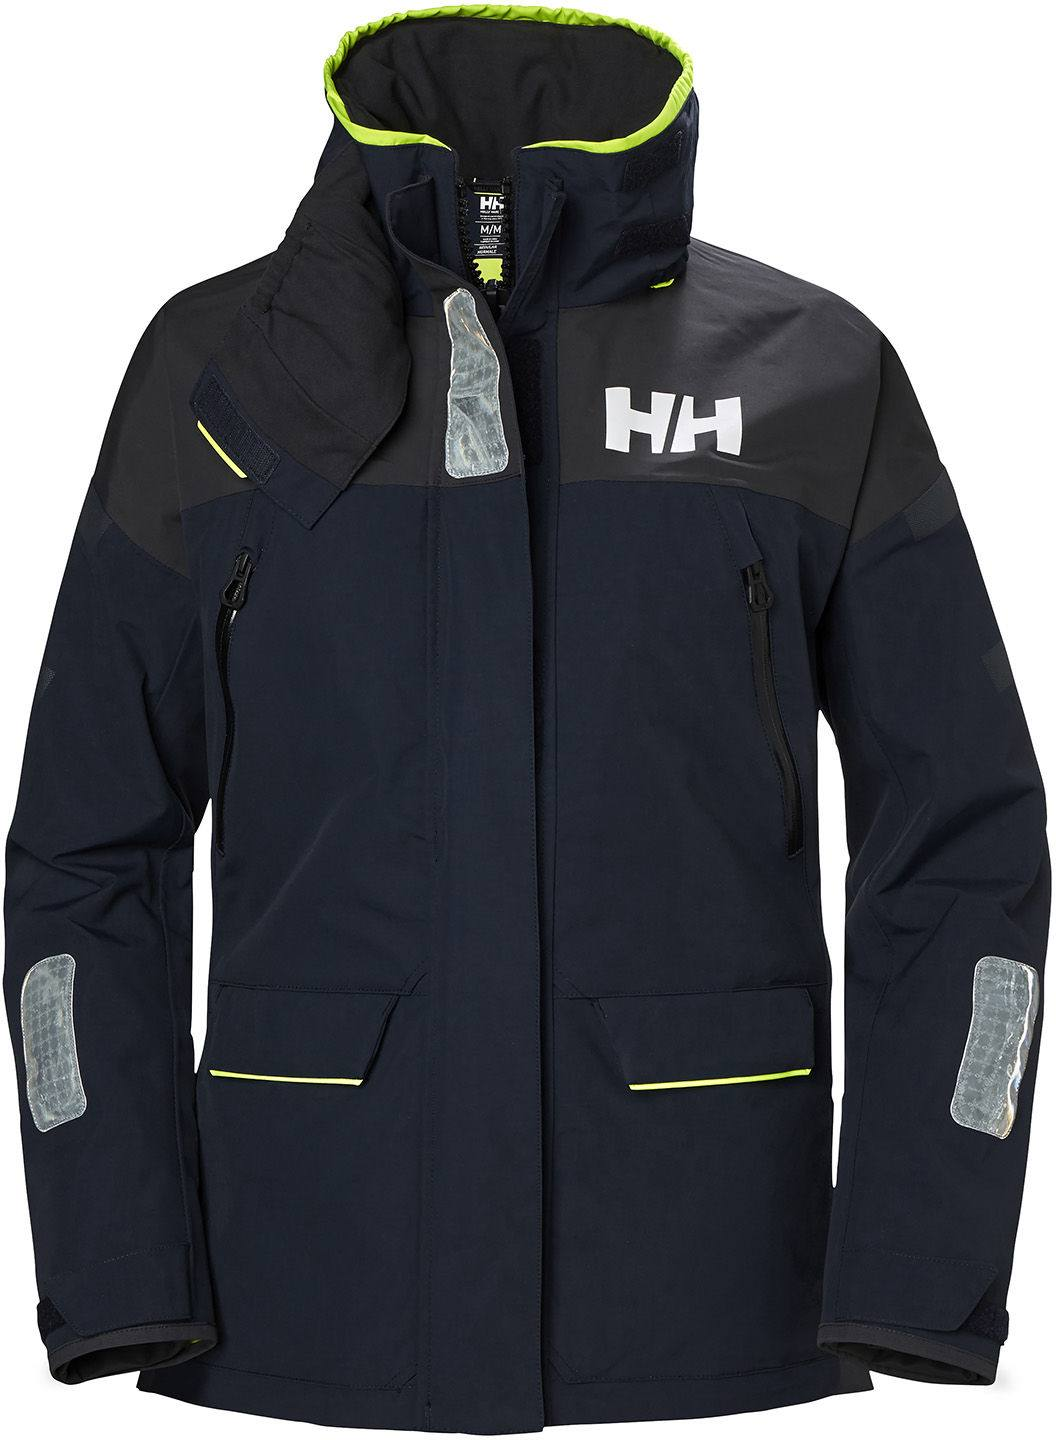 25df4933a23bc Helly Hansen Skagen Offshore Women's Jacket | Scandinavian Outdoor